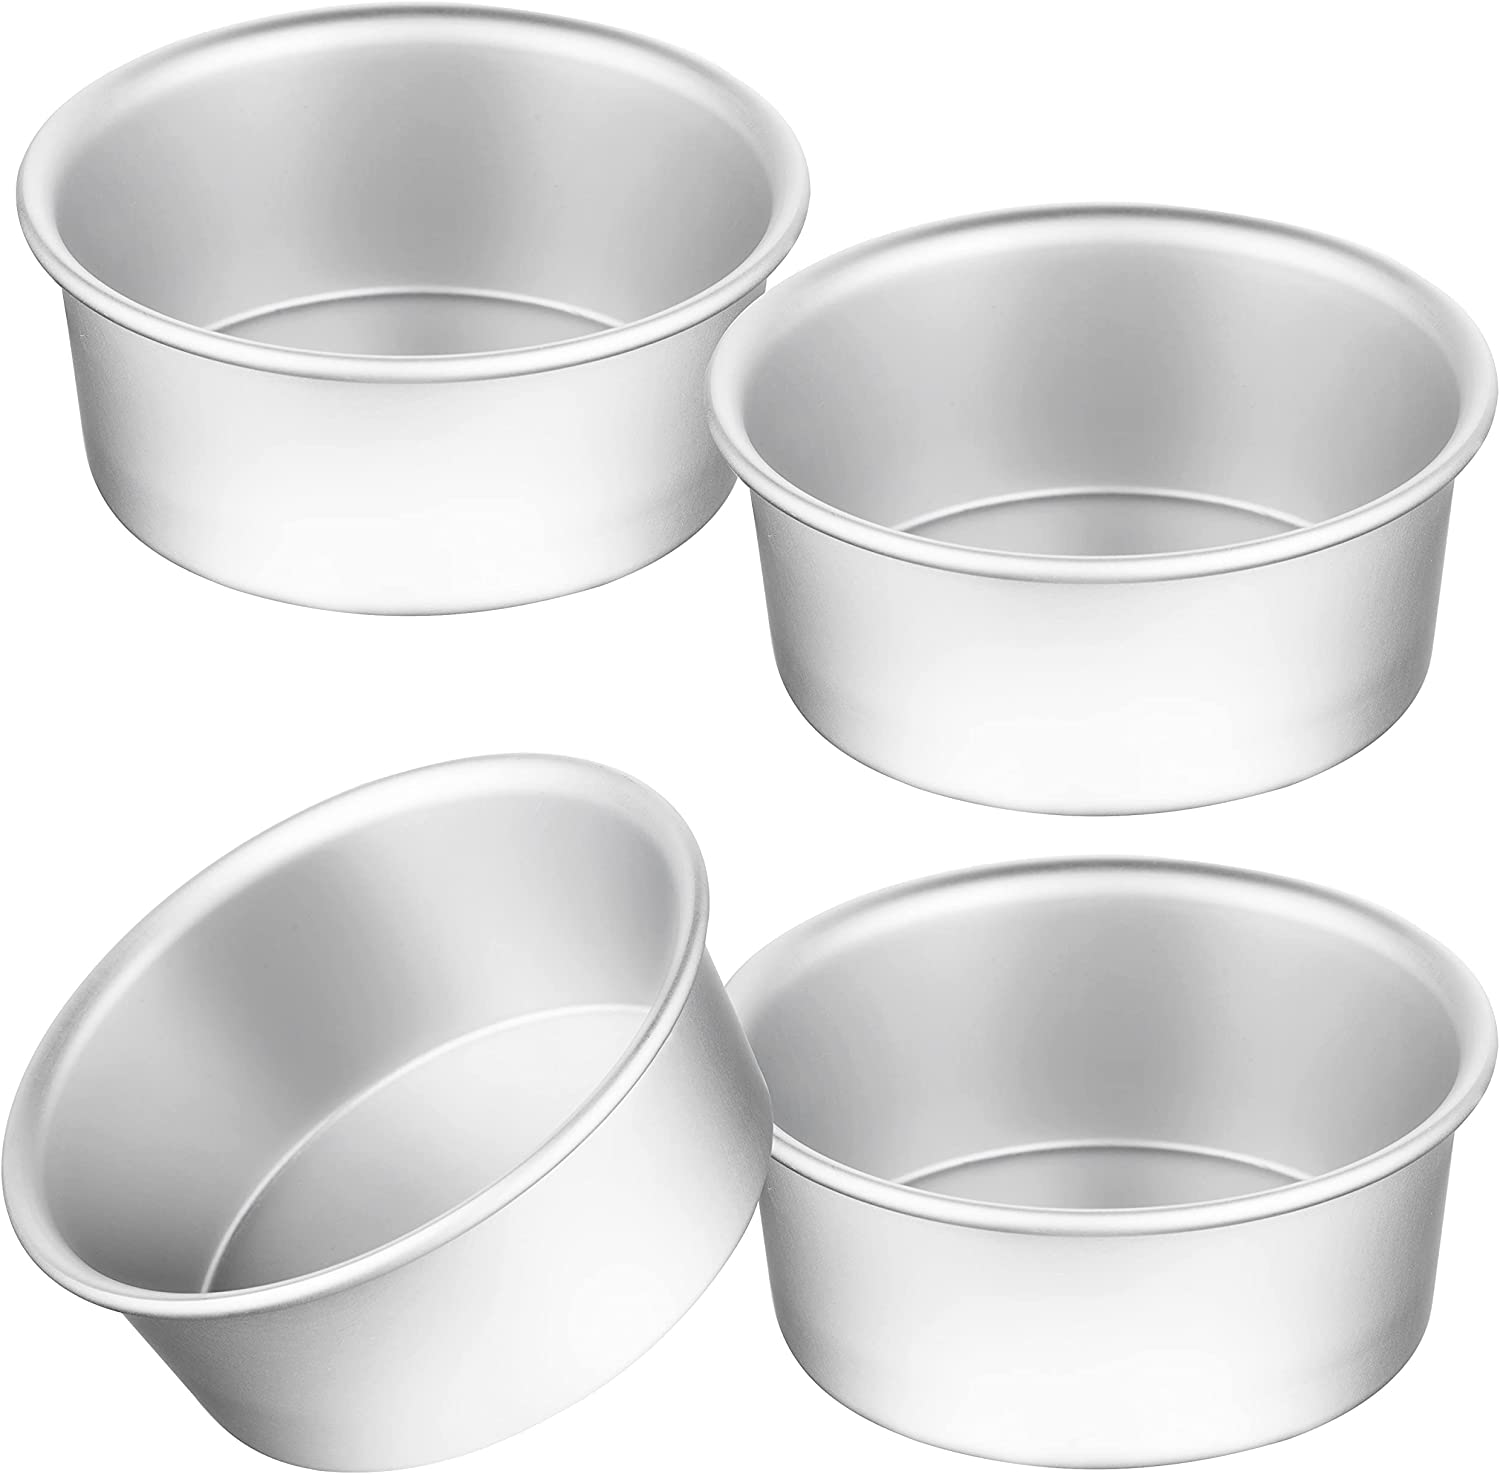 4 Inch Cake Pan, Kmeivol 4 Pack Round Cake Pans, Aluminum Baking Pan, Small Angel Food Cake Pan for Ice Cream Cakes, Mini Pizza & Quiche, Leakproof & Easy to Clean, Mirror Finish & Easy Releasing